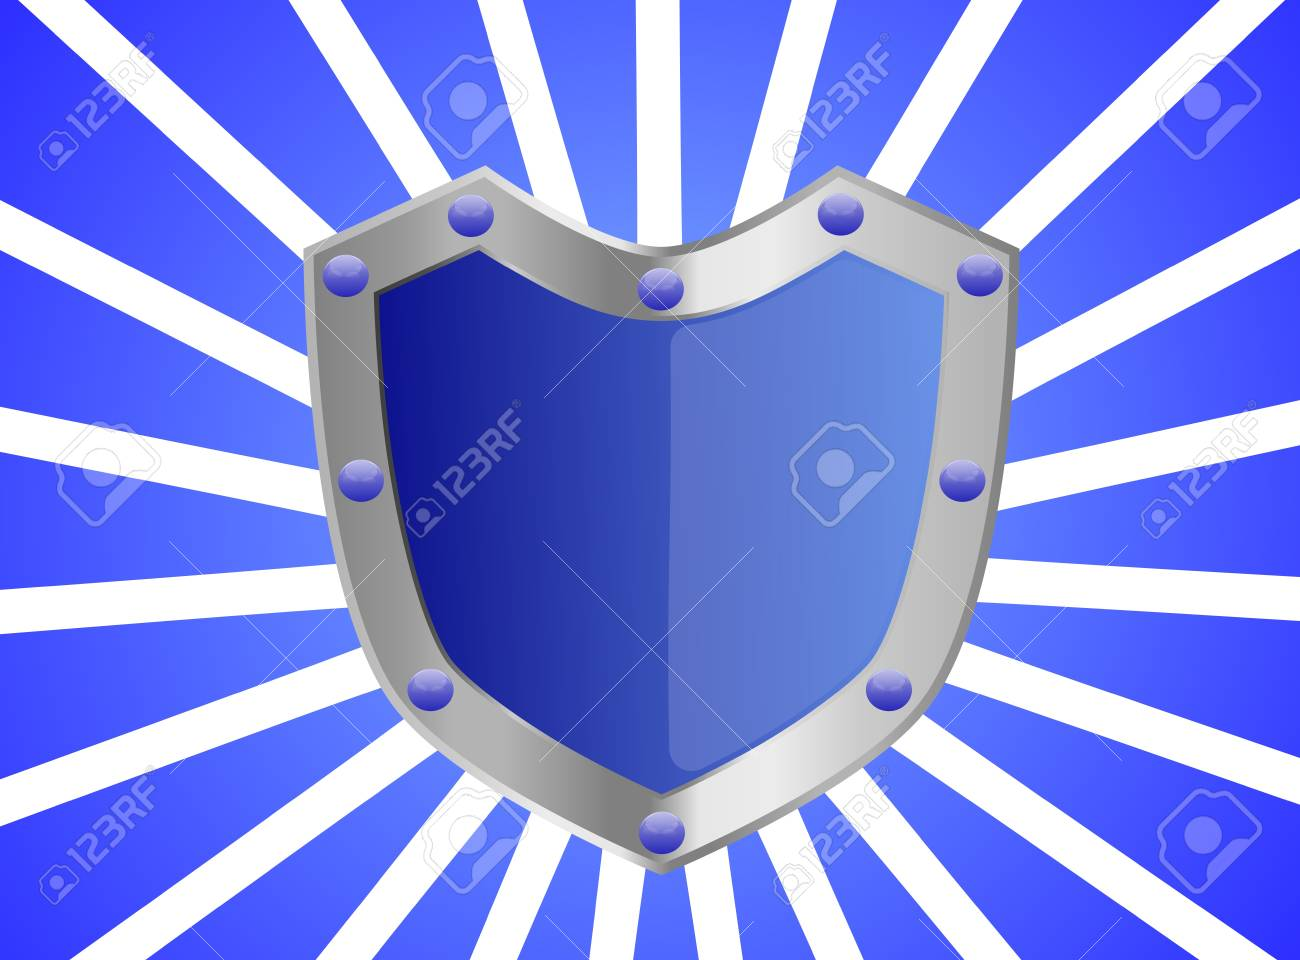 A blue studded shield with silver frame background Stock Photo - 17045672